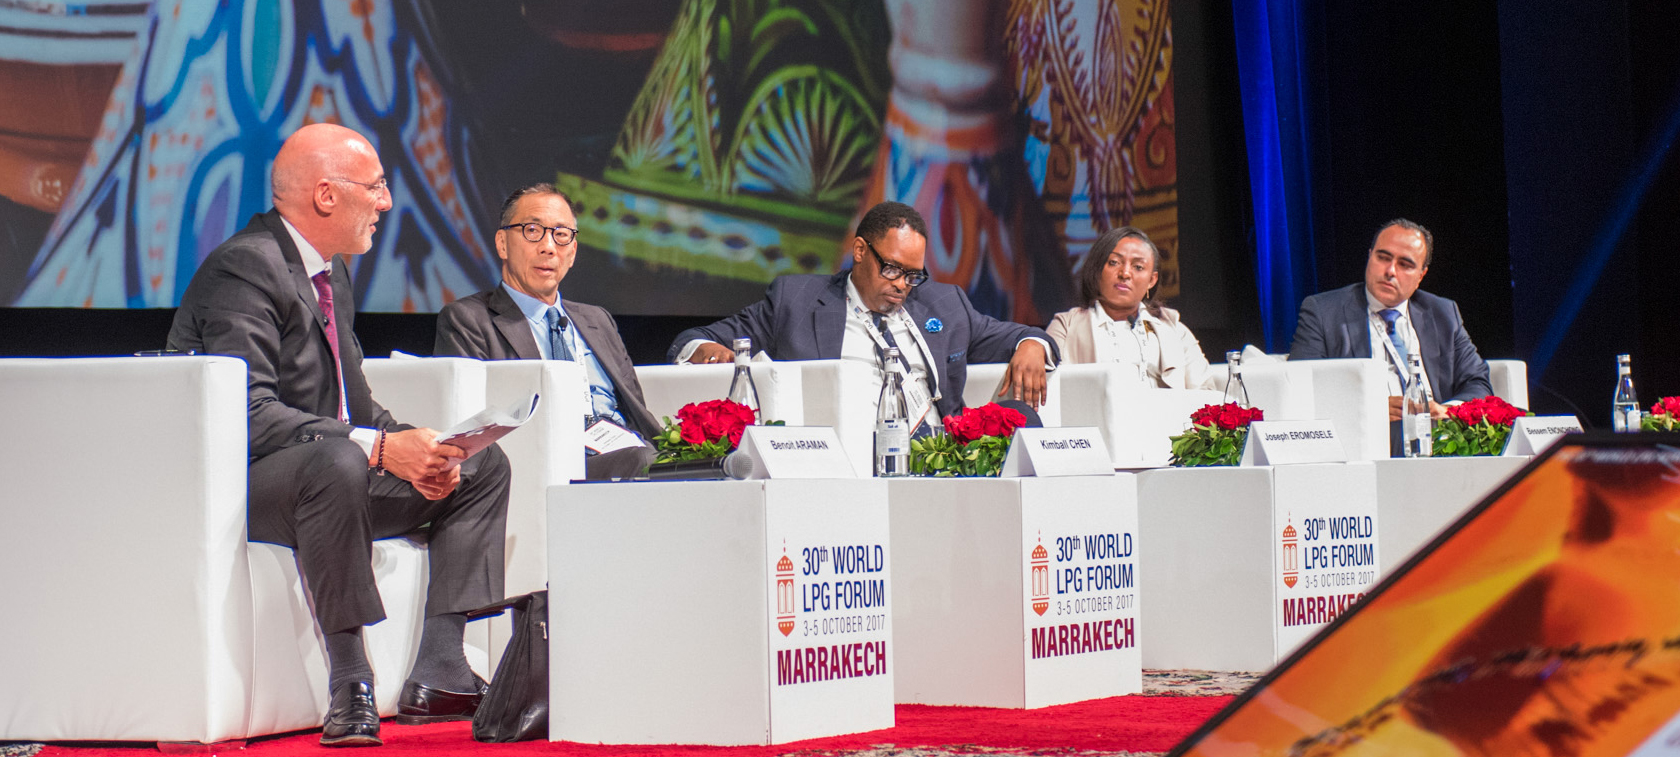 30th World LPG Forum wrapped up in Marrakech